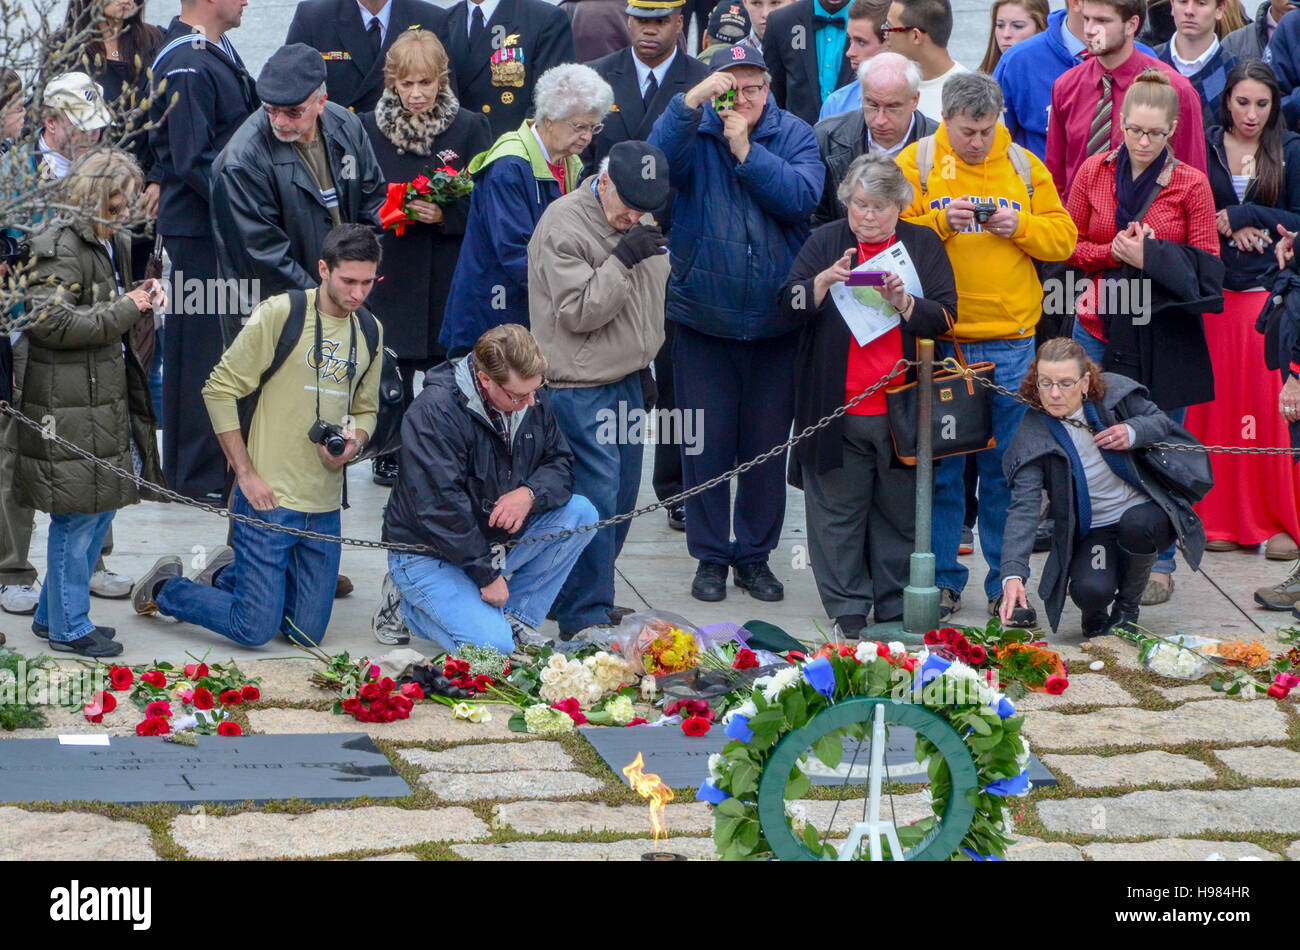 Citizens visit the grave of John F. Kennedy on the fiftieth anniversary of his assassination. Arlington National - Stock Image